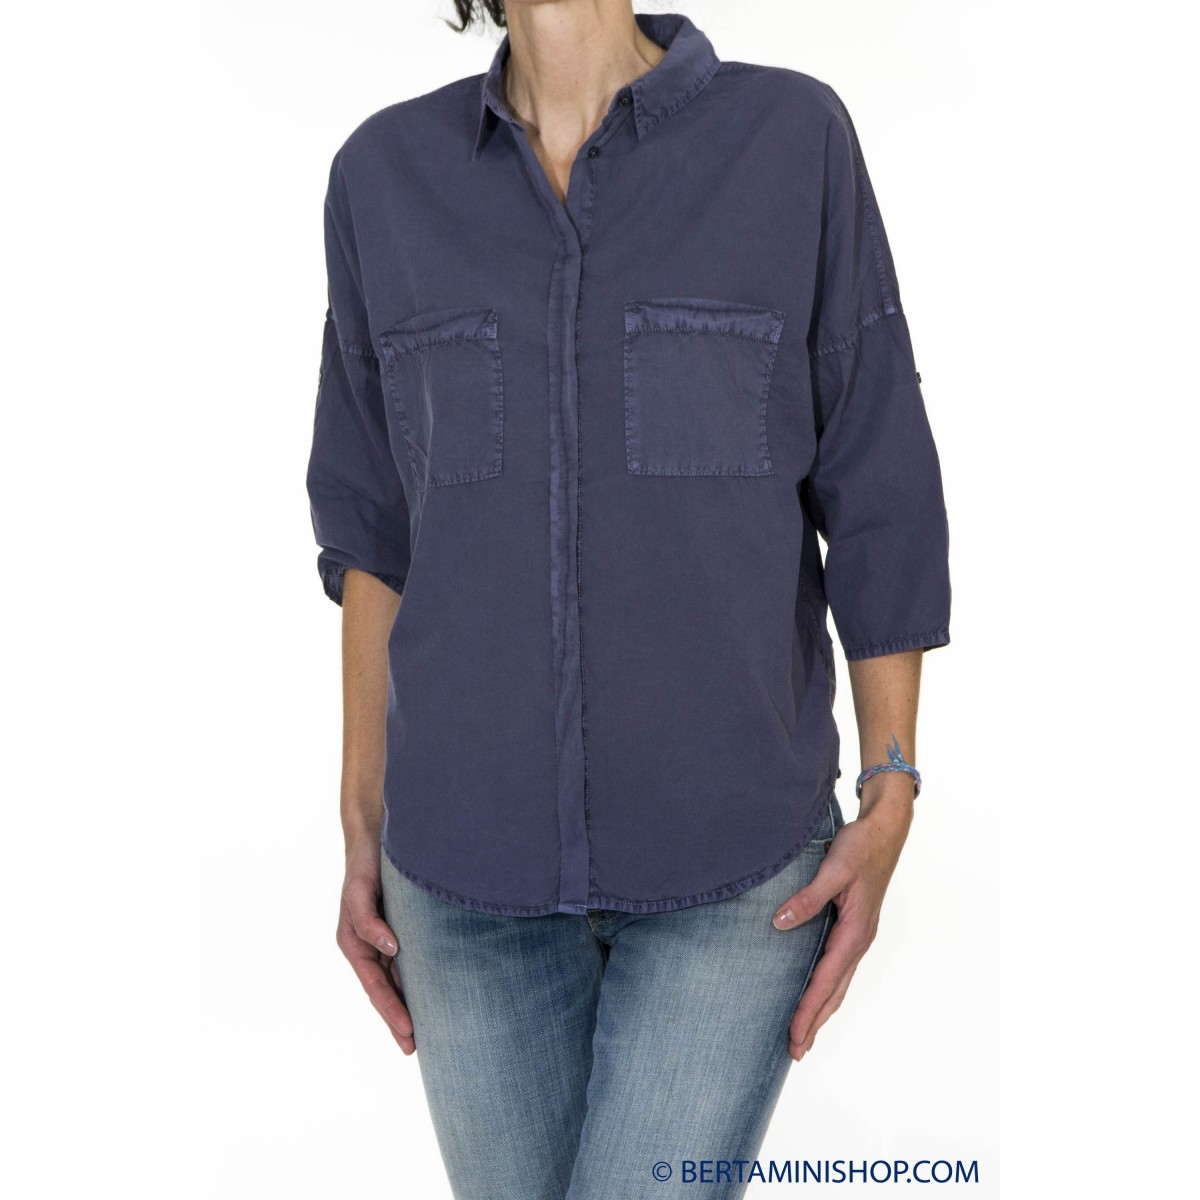 Camicia donna Better rich - F42 camicia over 3810 - Blu